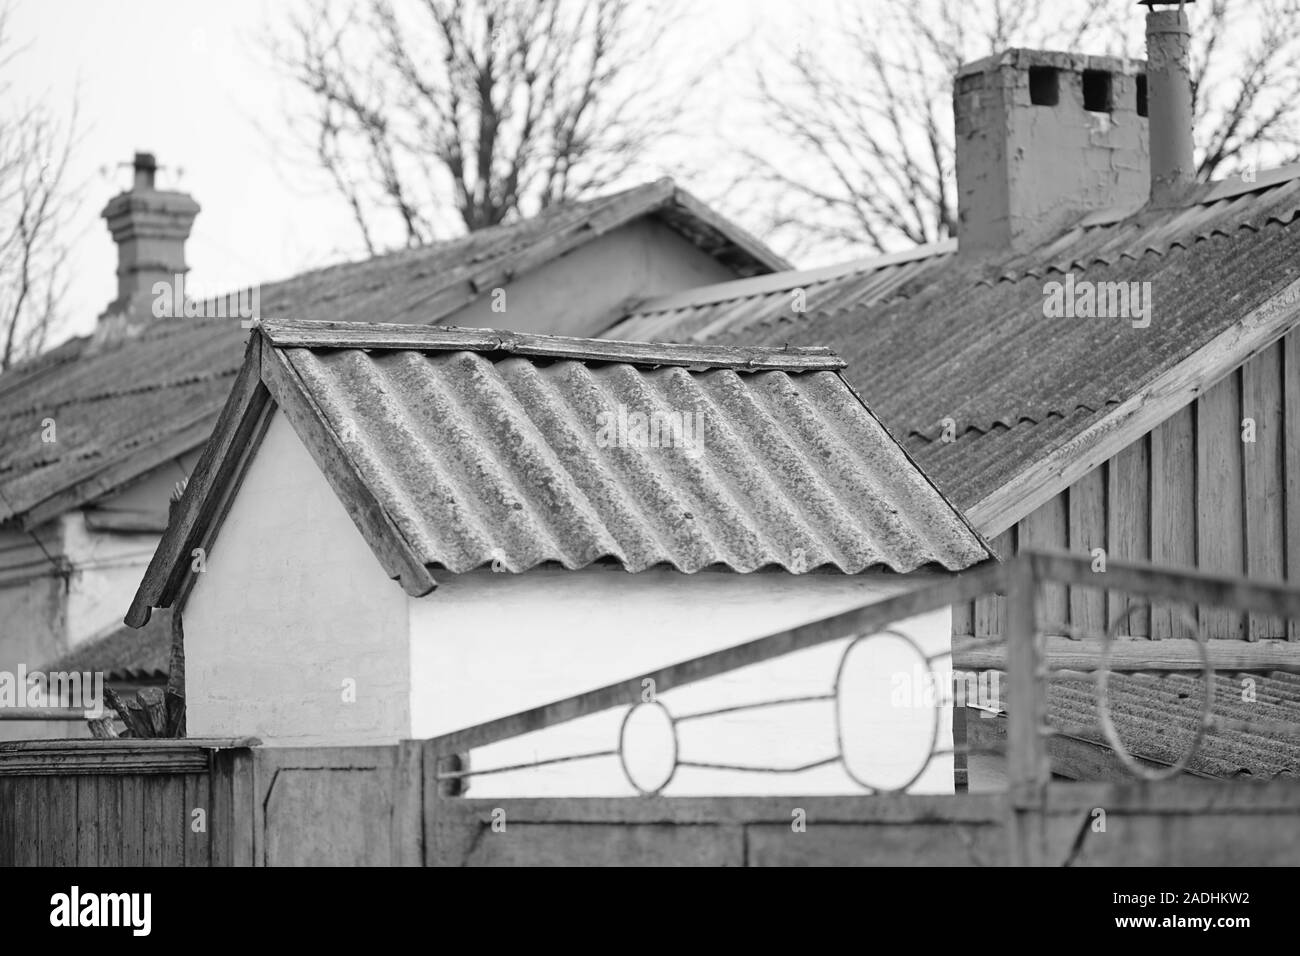 Asbestos Cement Sheet High Resolution Stock Photography And Images Alamy